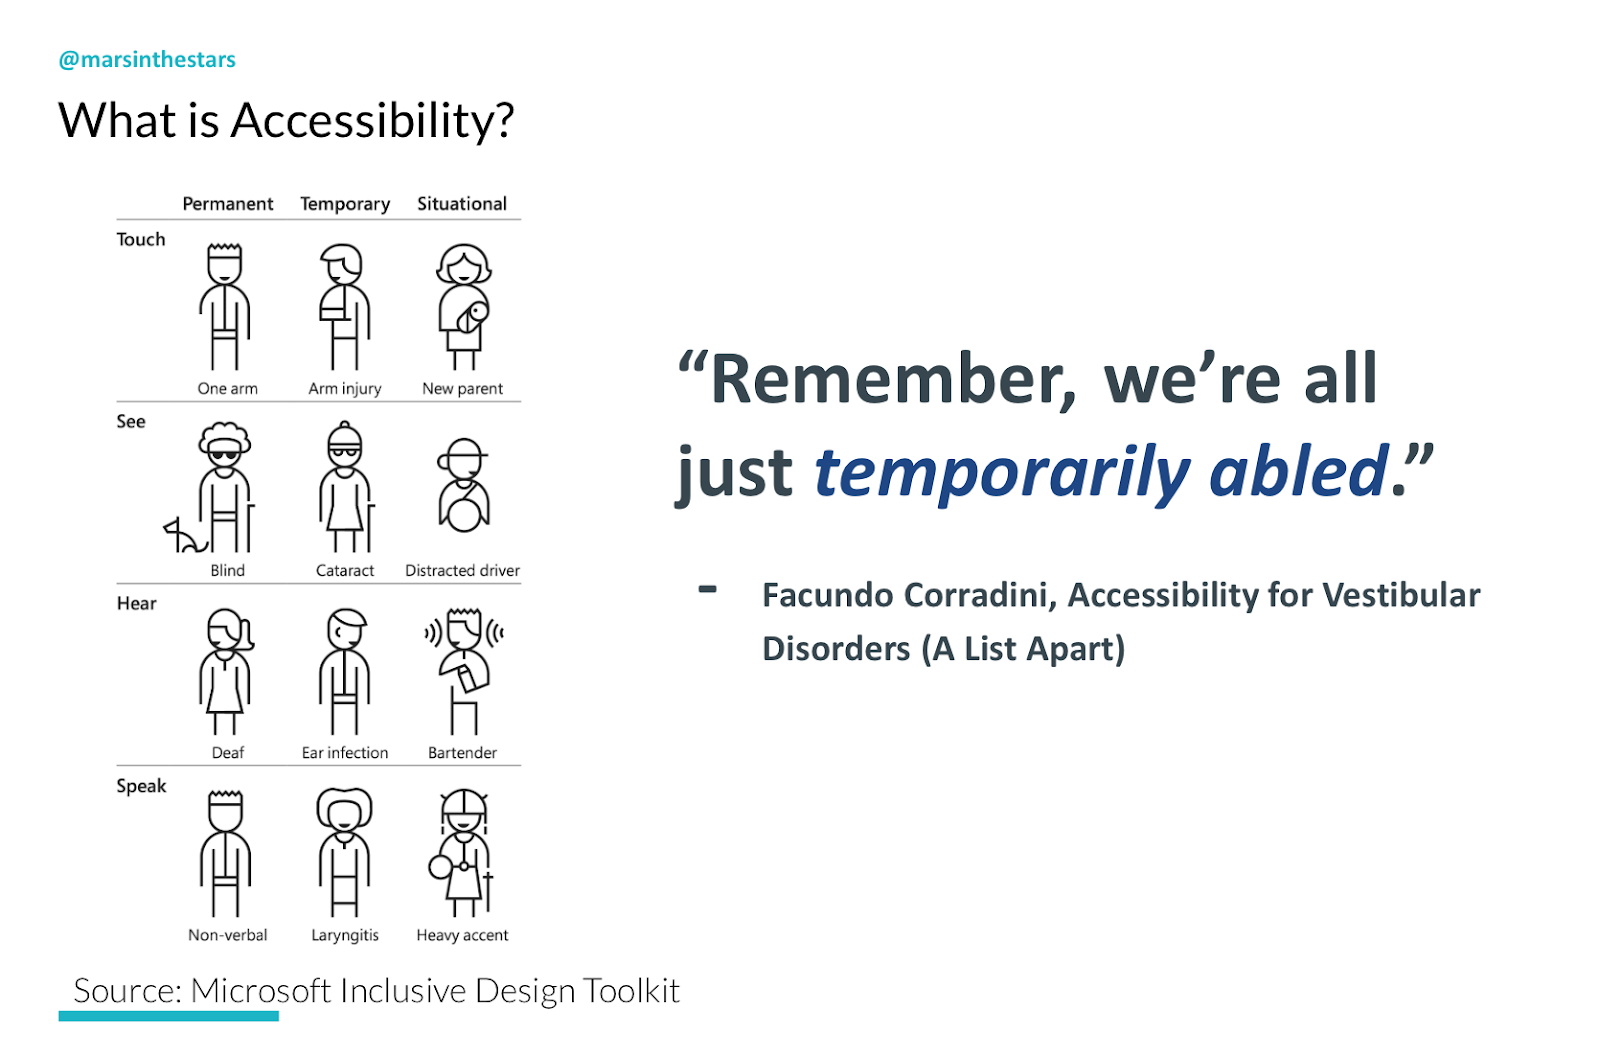 Slide shows Microsoft Inclusive Design Kit which shows how we can all be abled or disabled permanently, temporarily, and situationally.